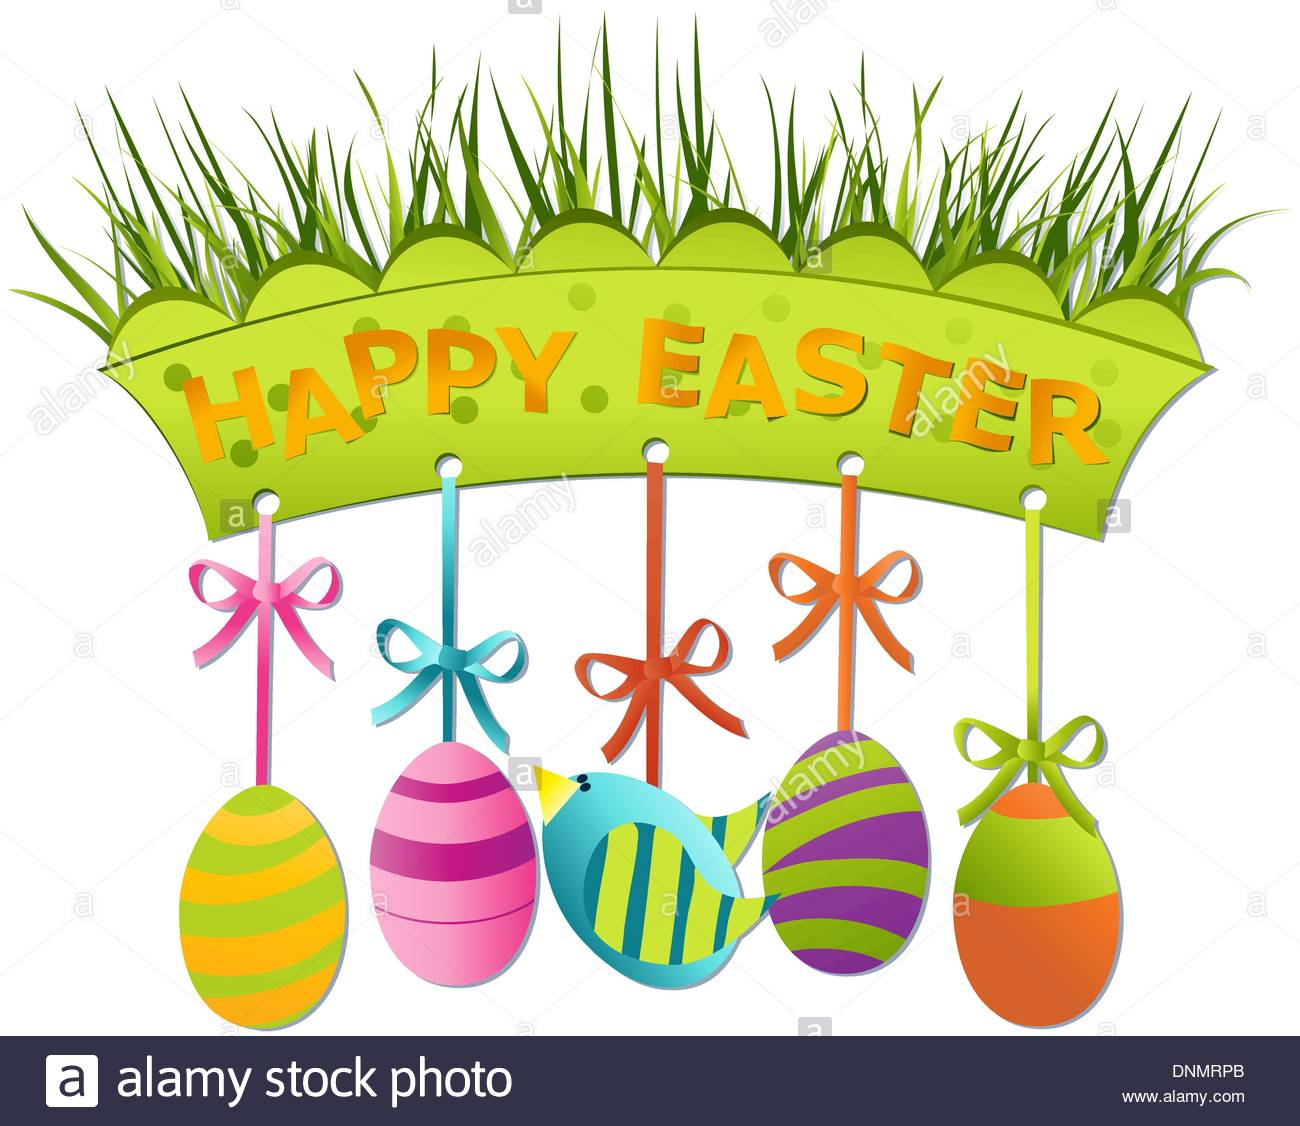 Happy Easter backgrounds Stock Vector Art Illustration Vector 1300x1126